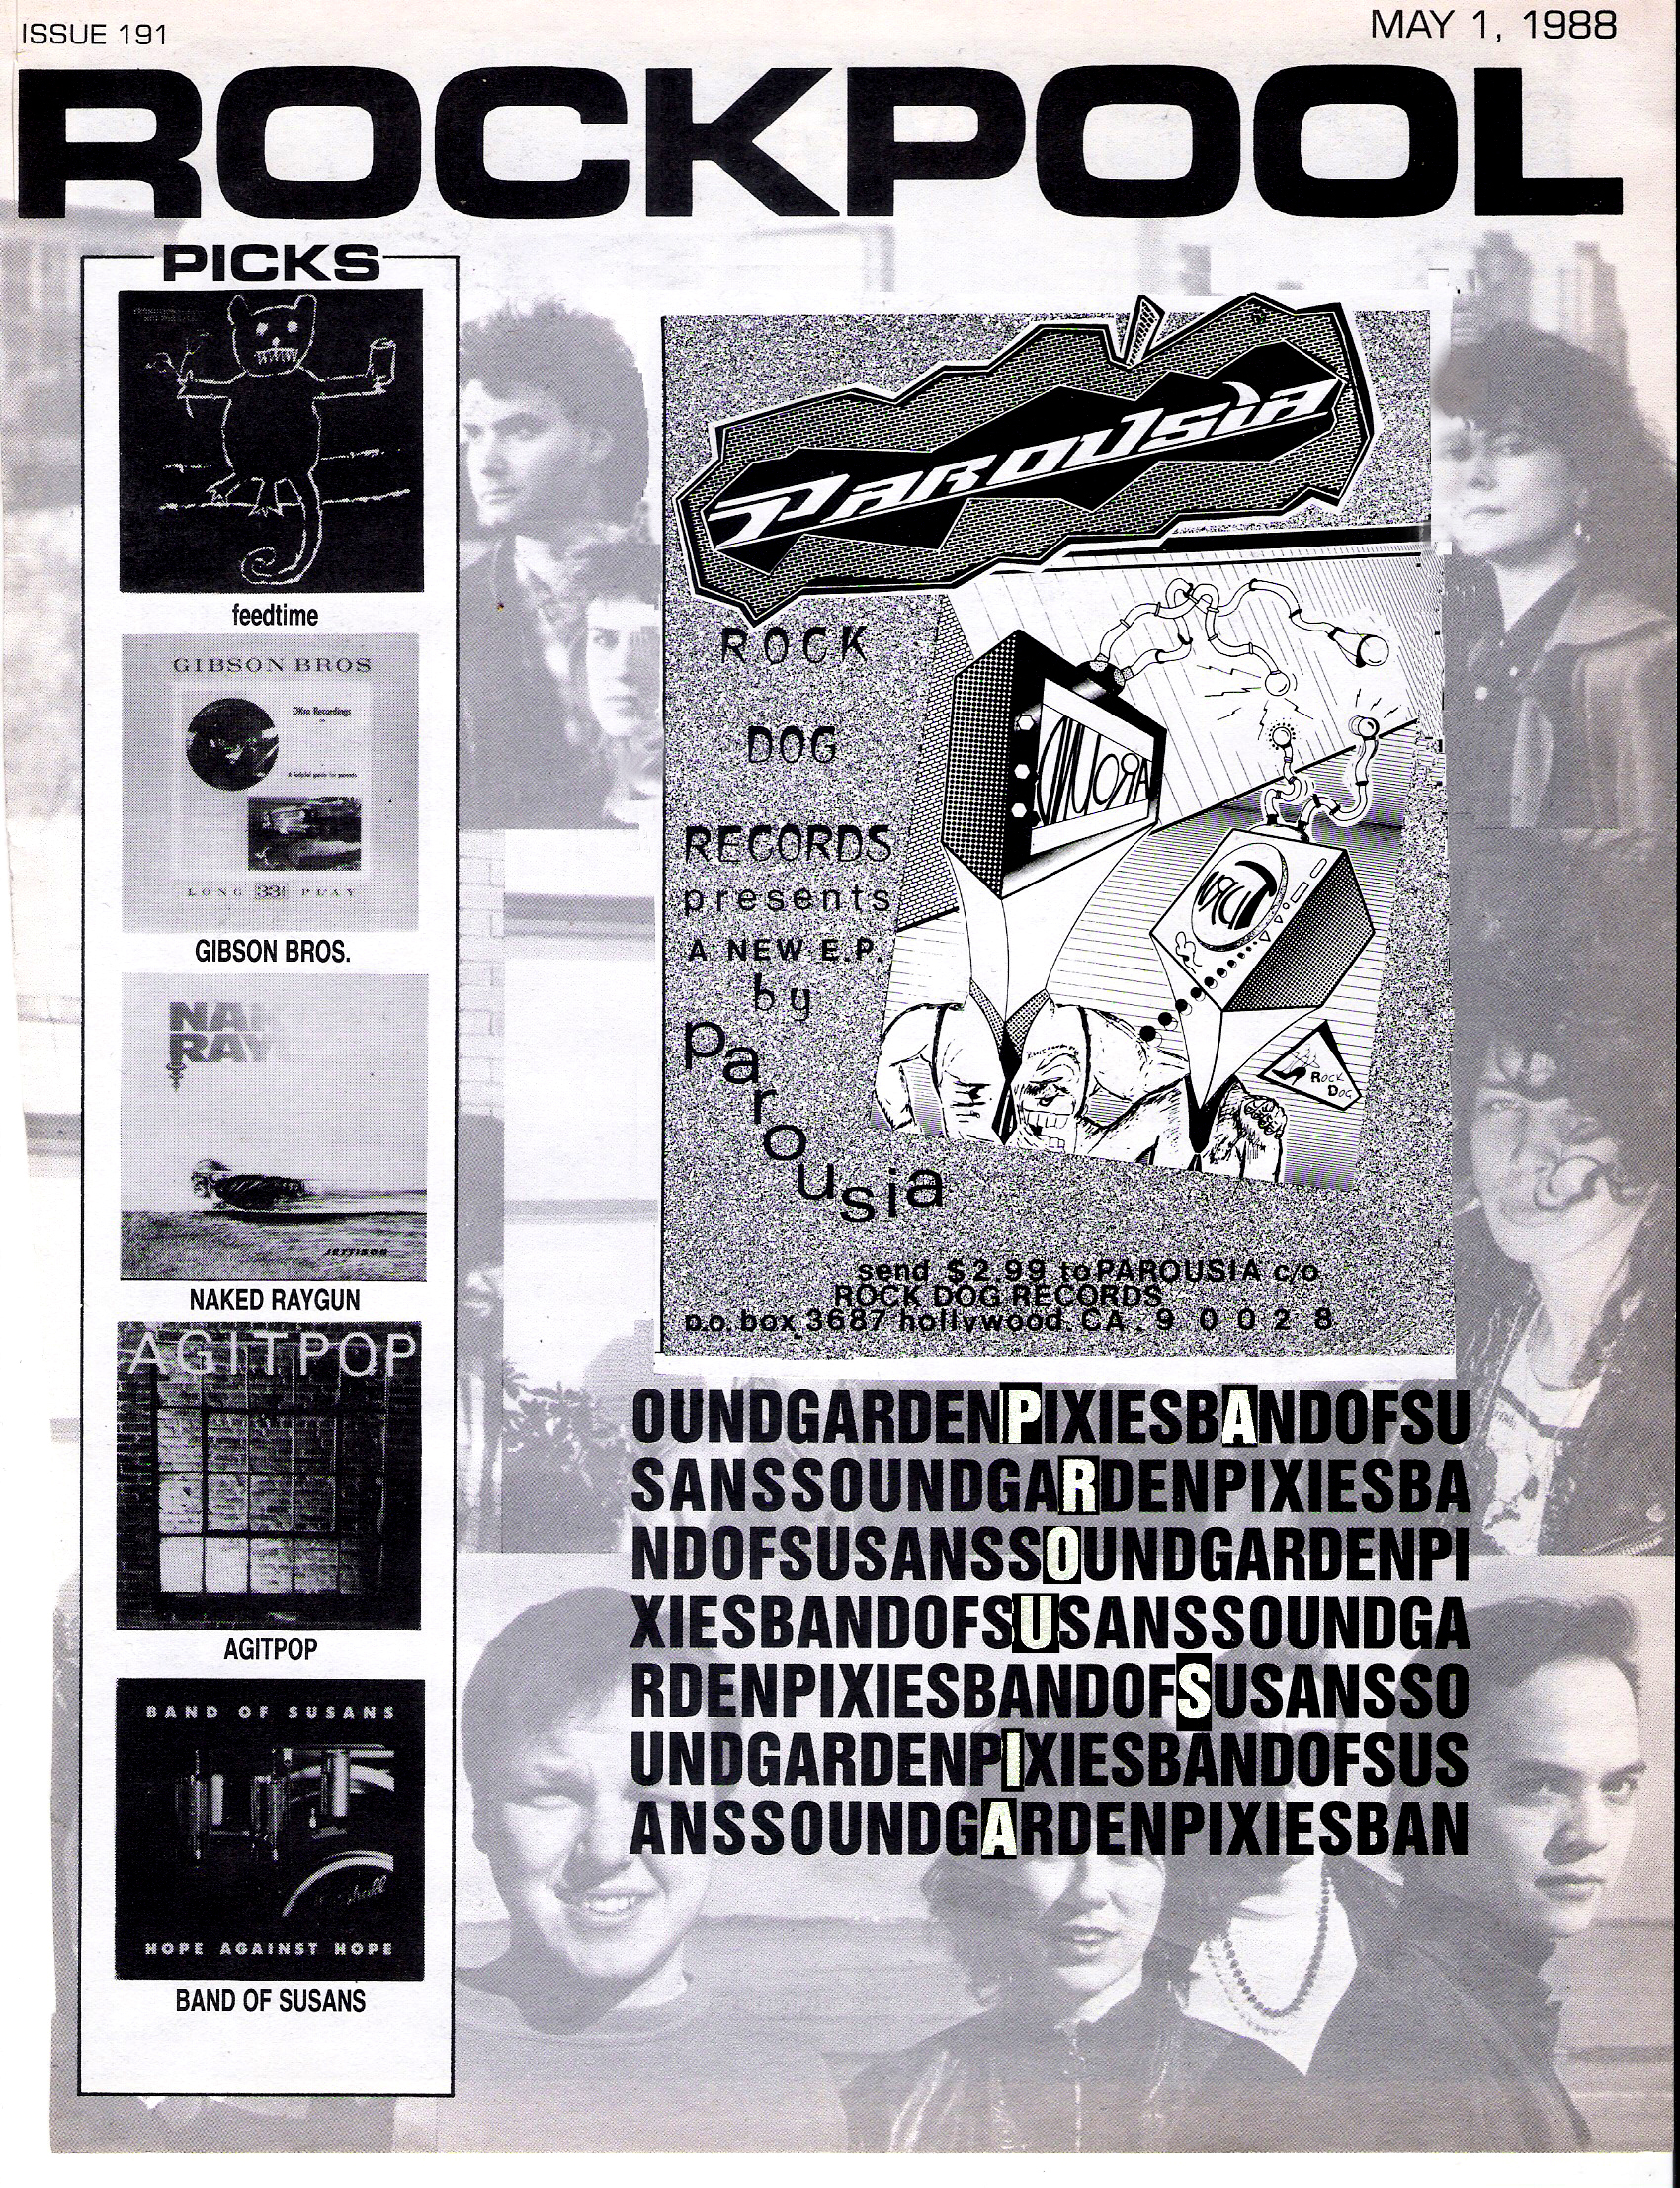 PAROUSIA featured in ROCKPOOL MAGAZINE. May 1, 1988